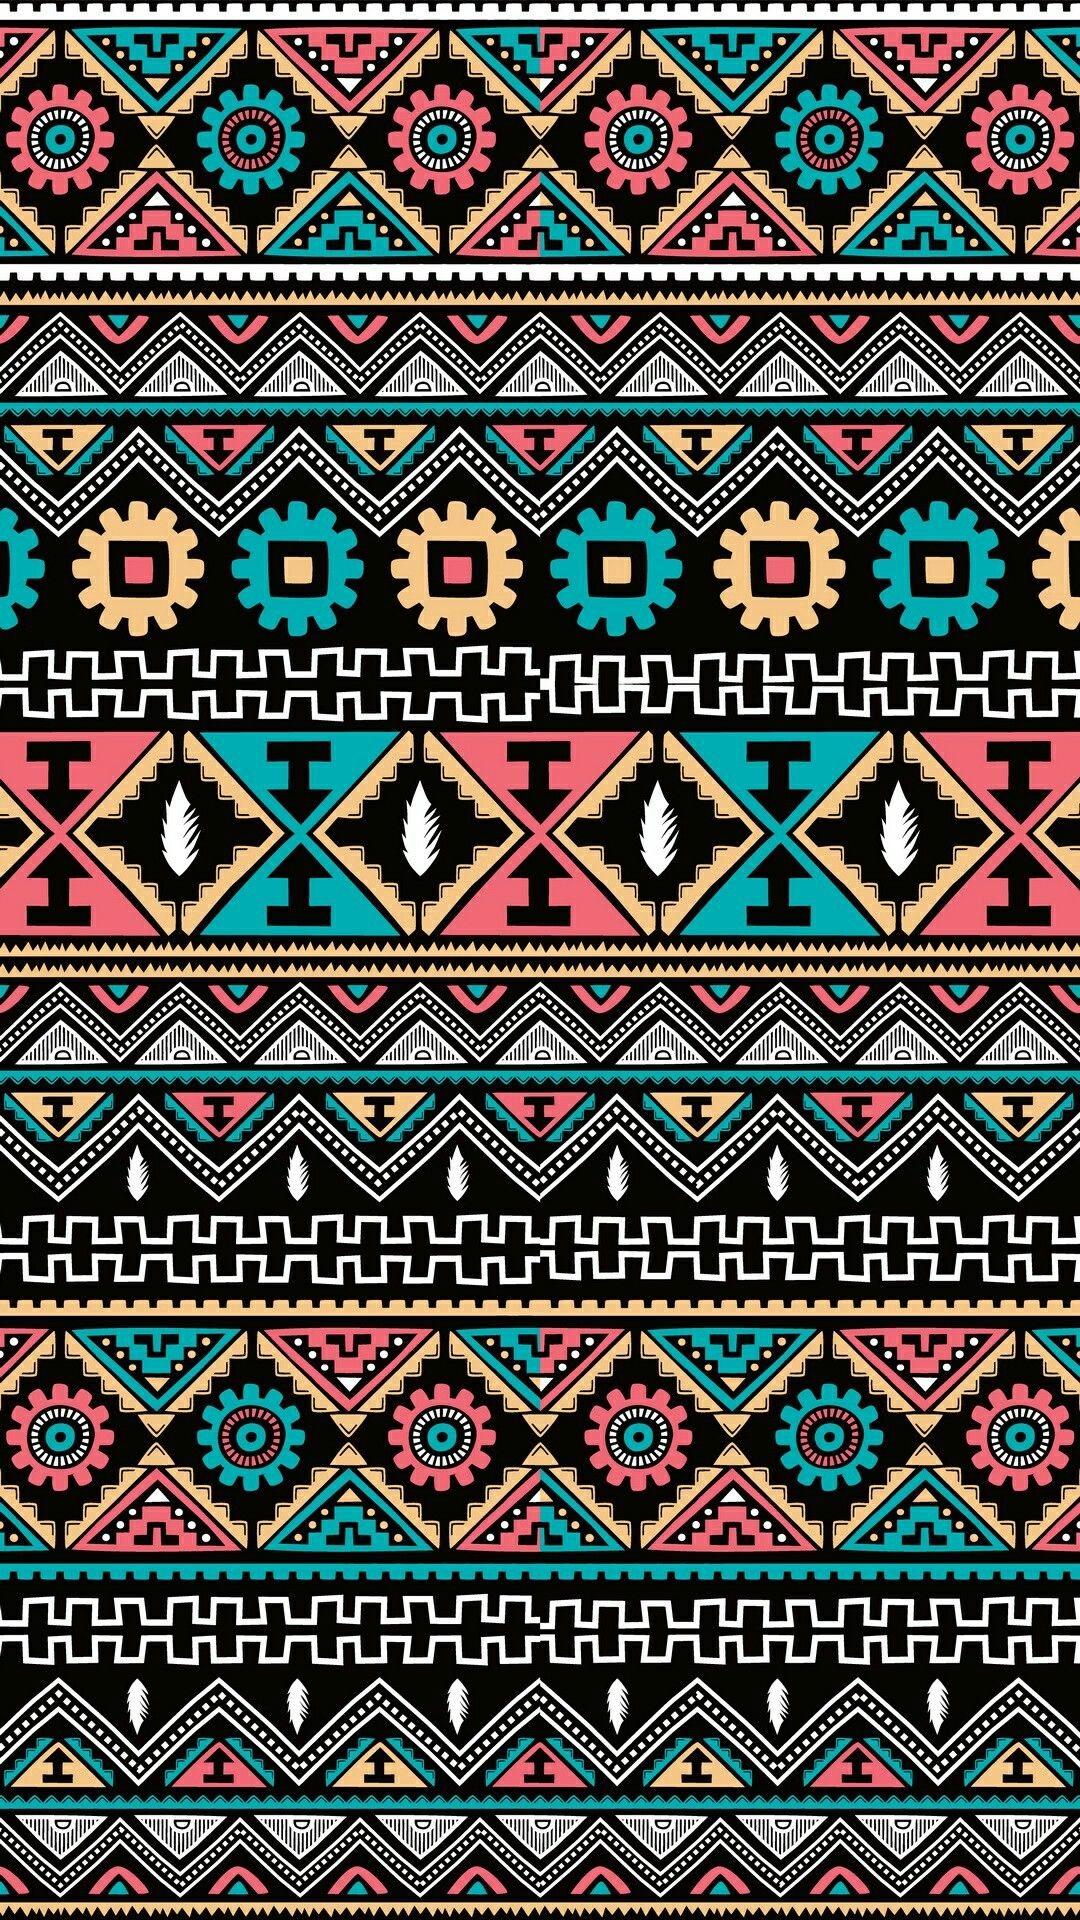 Pin by Zzxahra Ali on Iphone 6 wallpaper   Aztec pattern wallpaper, Aztec wallpaper, Bohemian ...